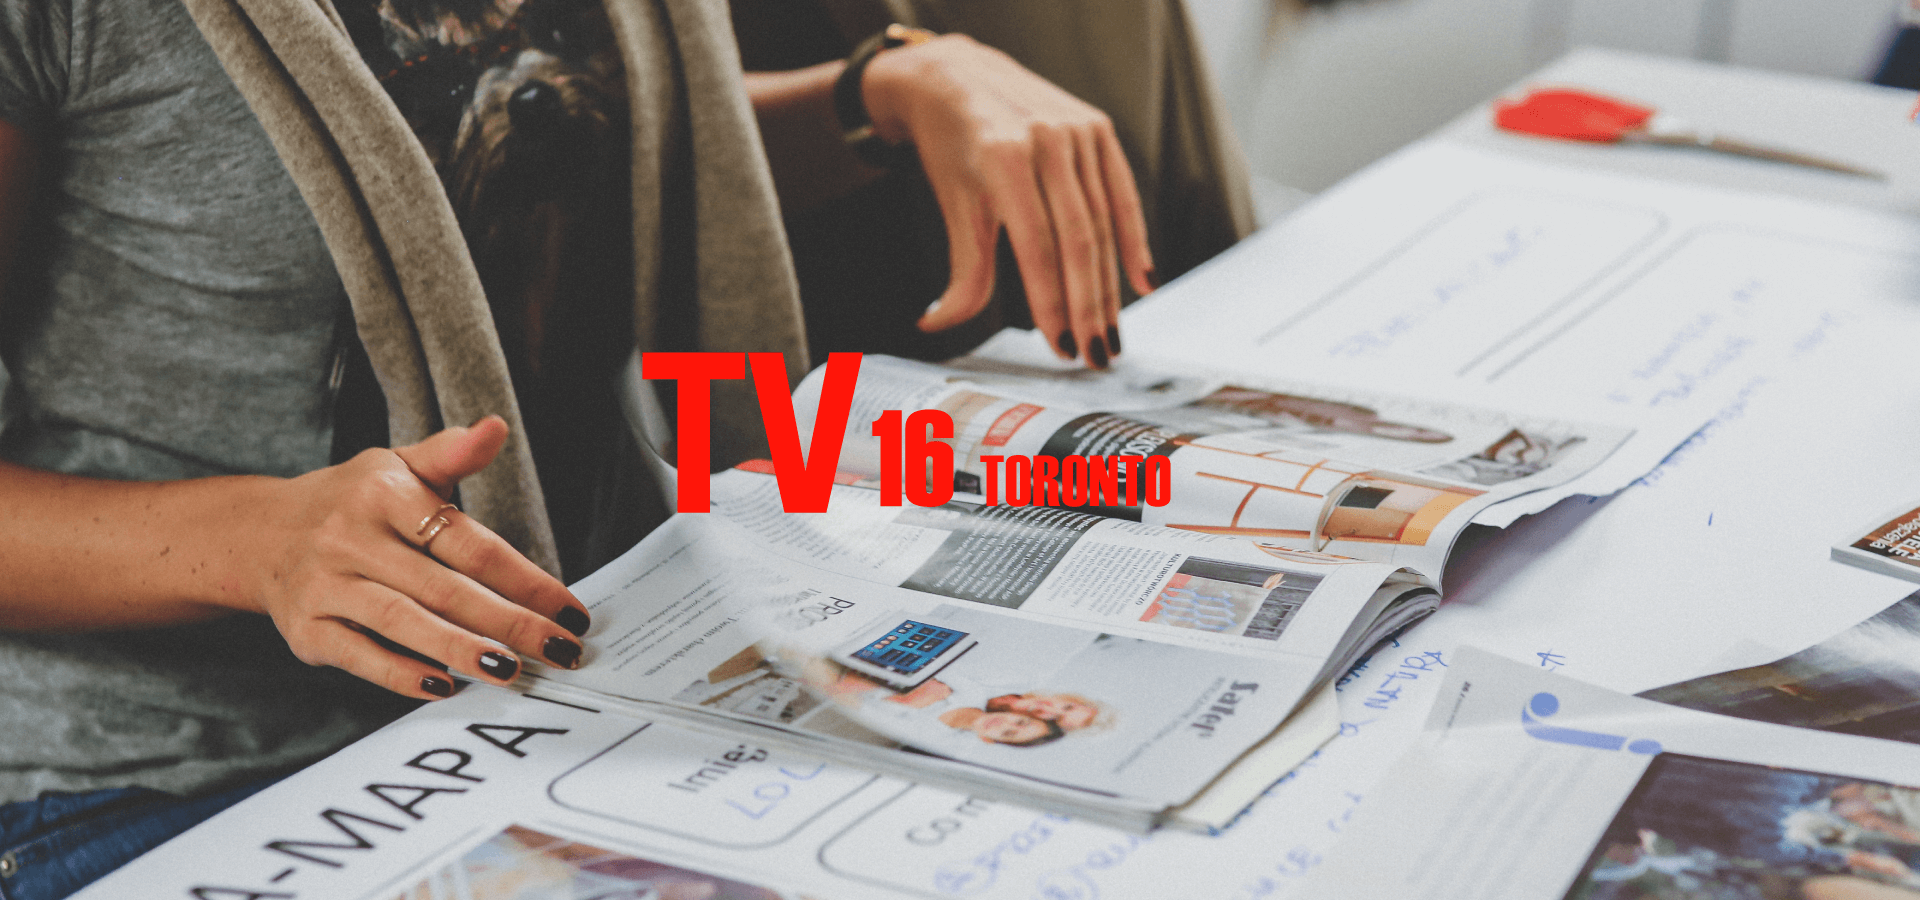 Web Development for Tv 16 Toronto